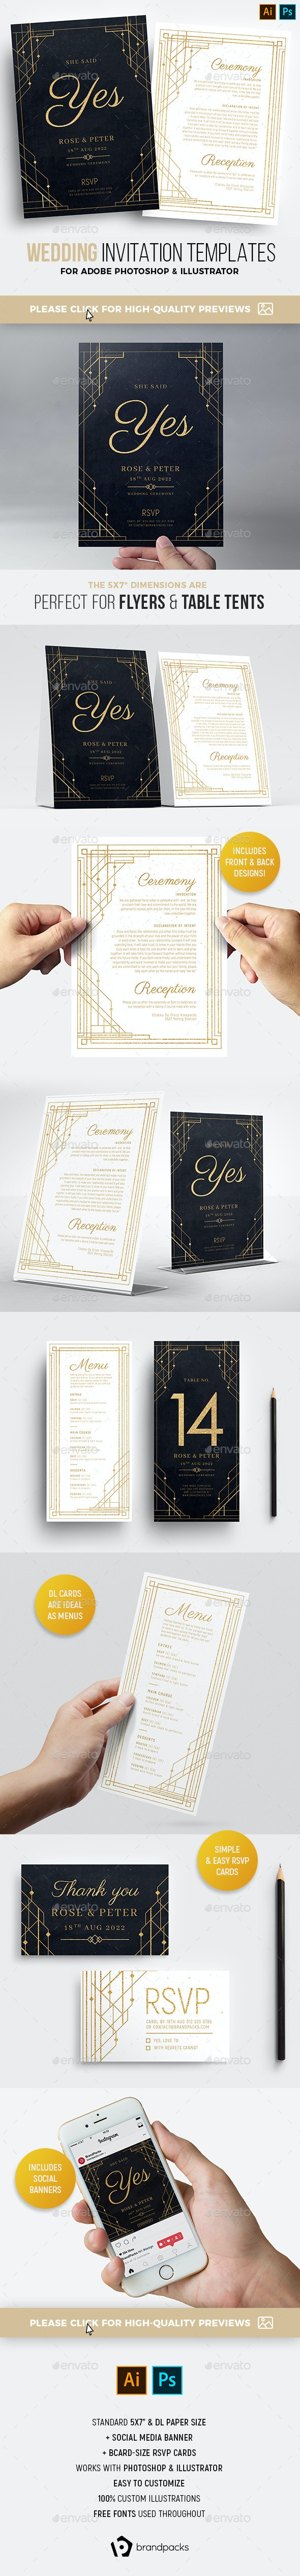 Art Deco Wedding Invitation Templates - Weddings Cards & Invites